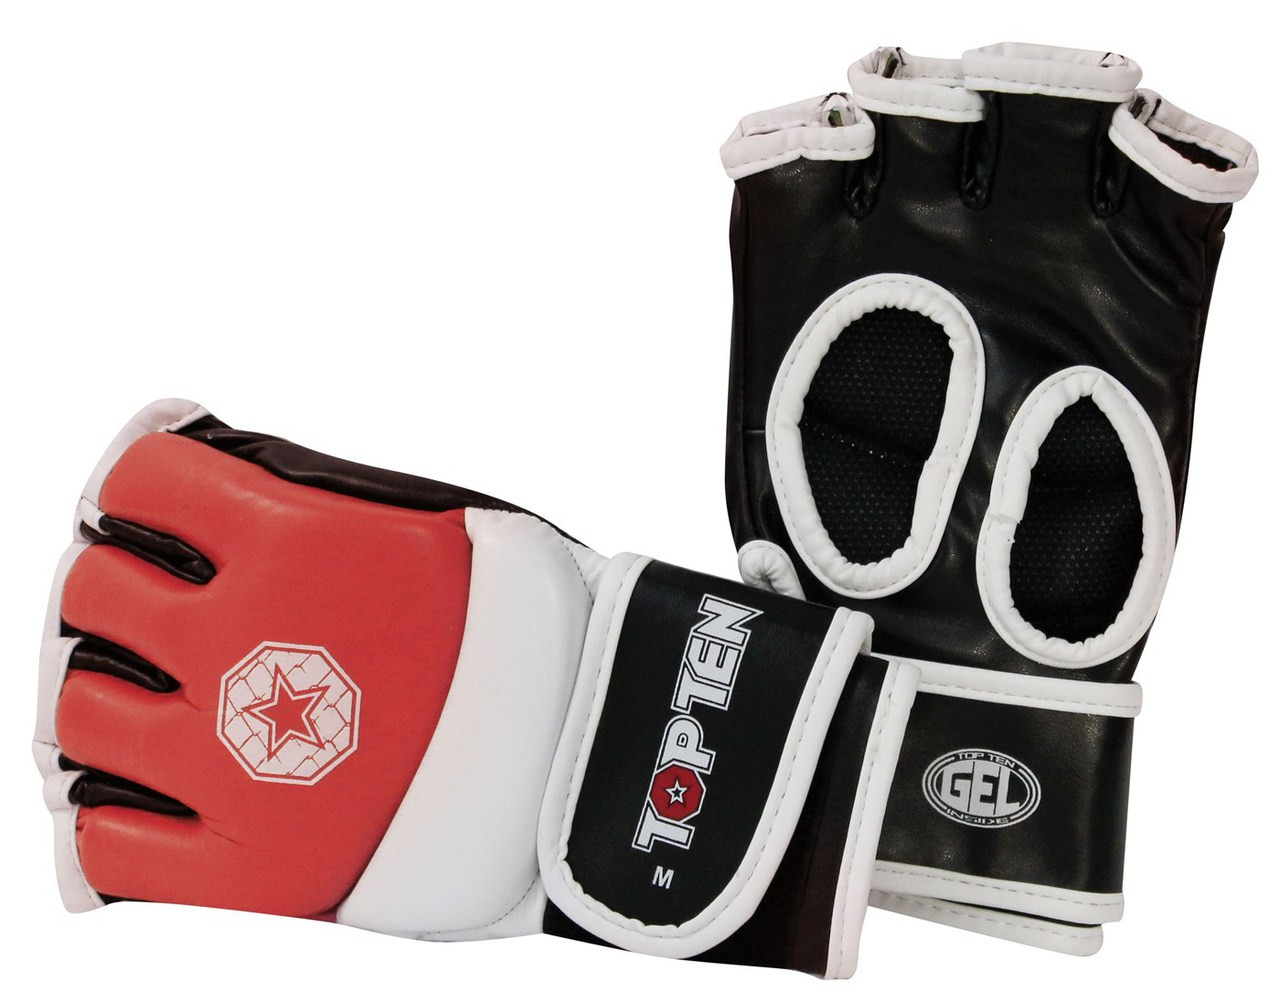 57f6057962a9 TOP TEN MMA Amateur Competition Gloves Red (23301-4) - Kicksport